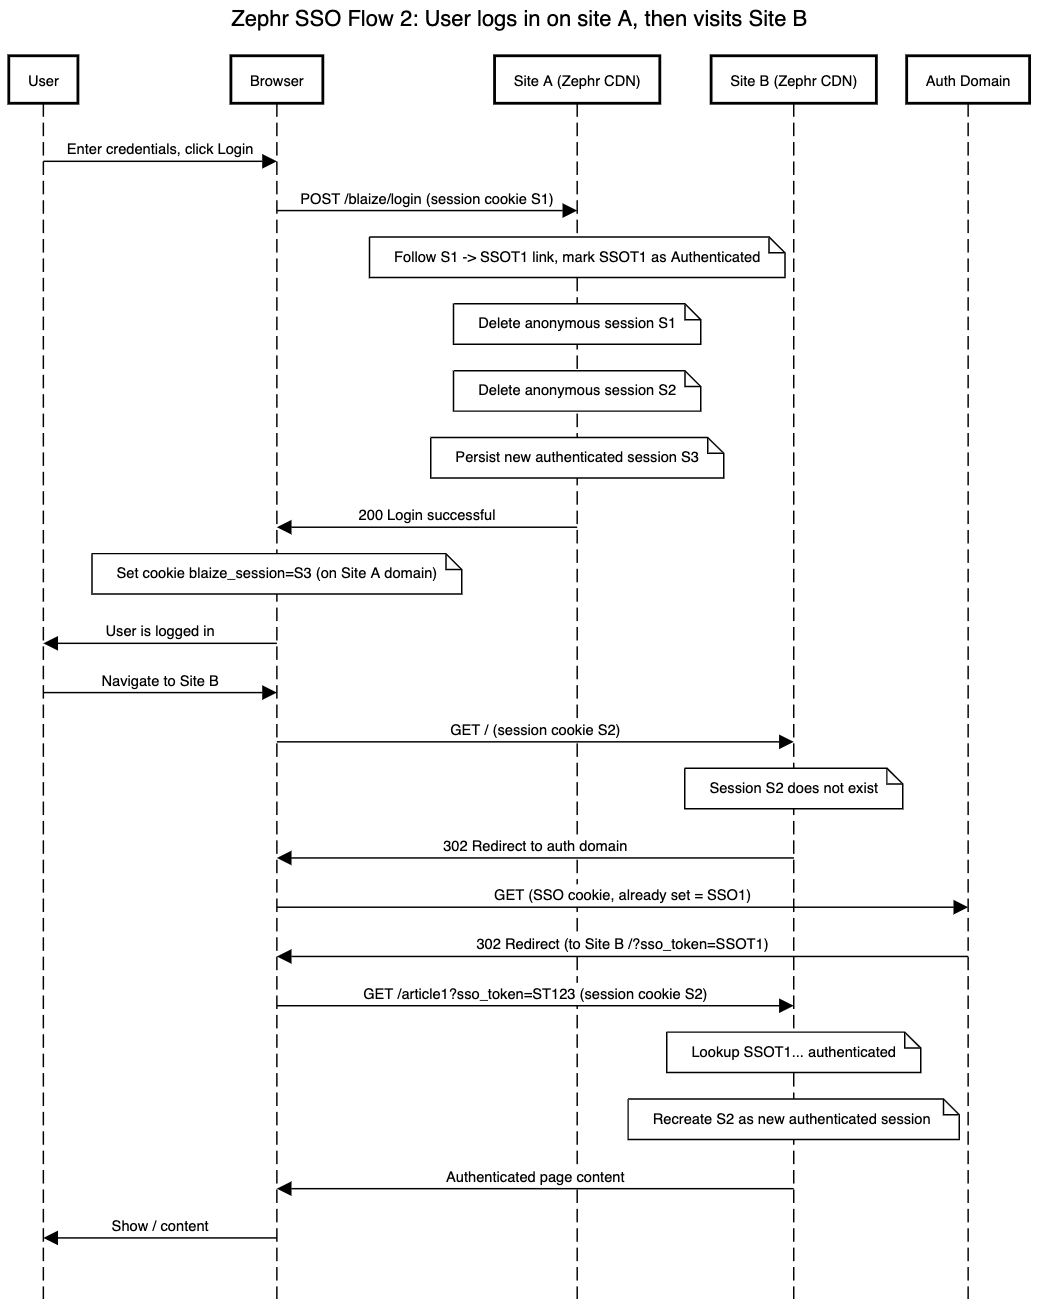 Flow 2- User logs in on site A, then visits Site B